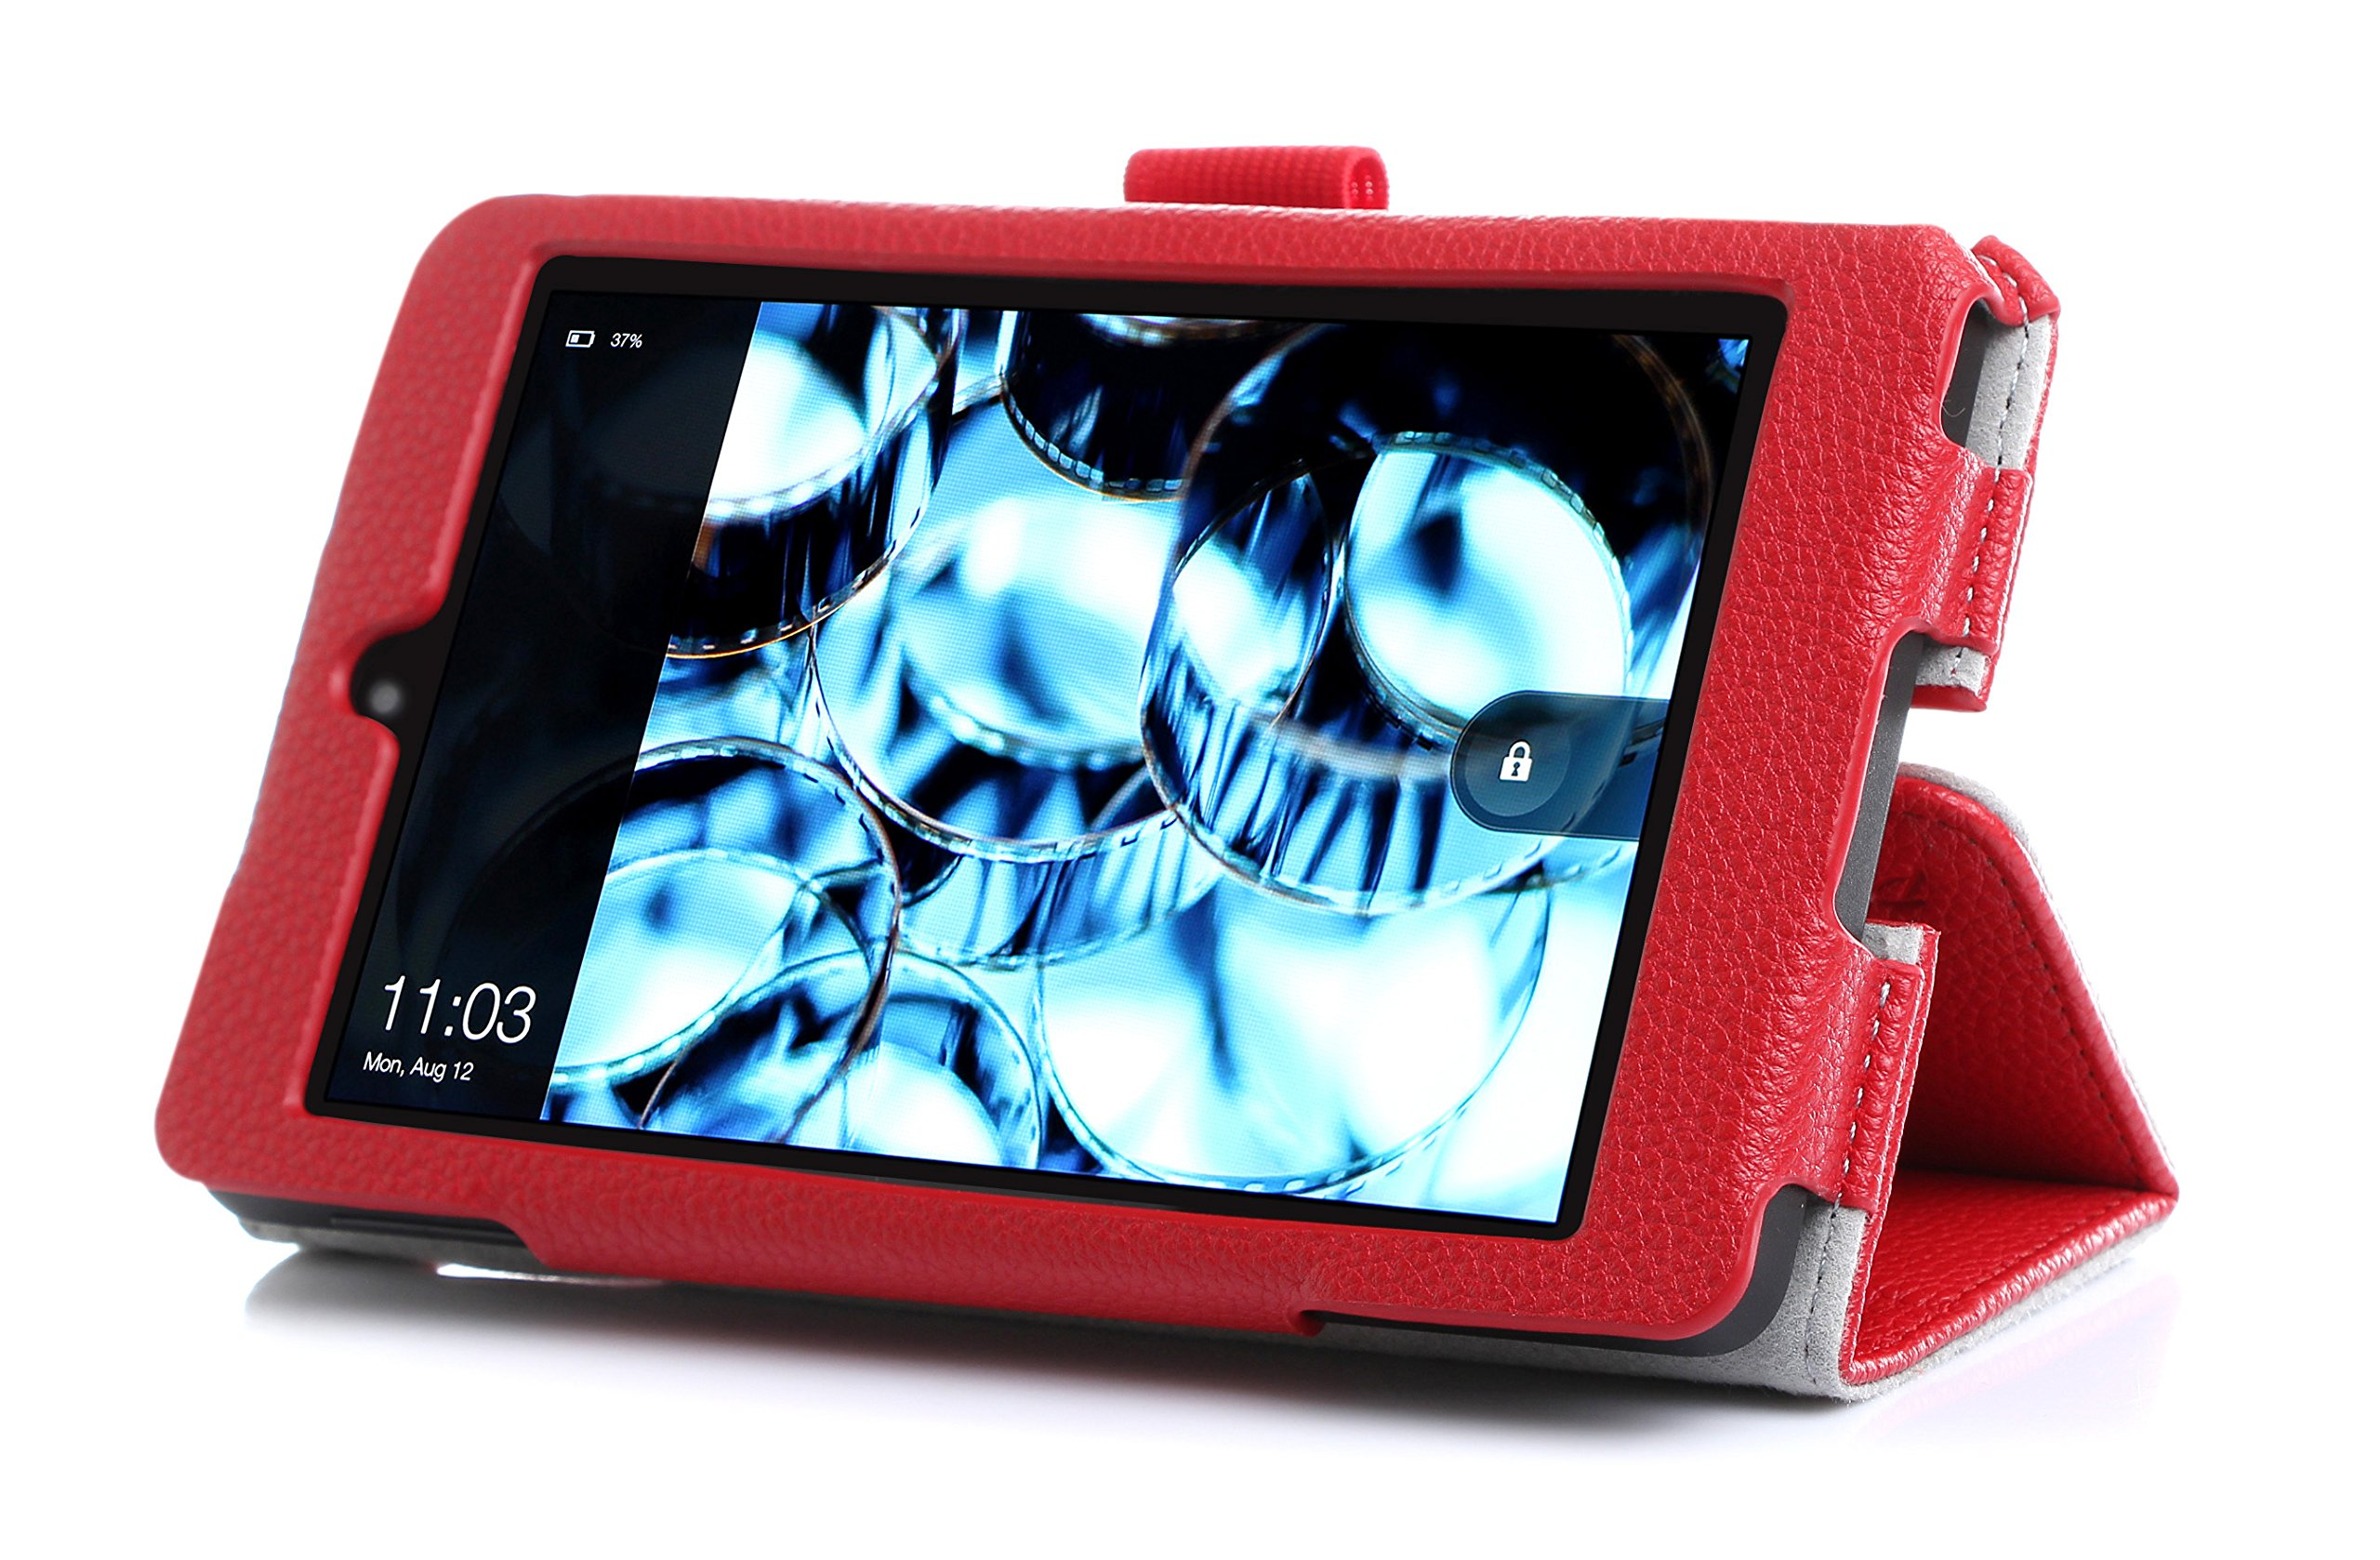 Fire HD 6 Case - ProCase Stand Folio Protective Cover Case for Amazon Fire HD 6 Tablet (will only fit Fire HD 6, 2014 Edition), comes wth bonus procase stylus pen (Red)